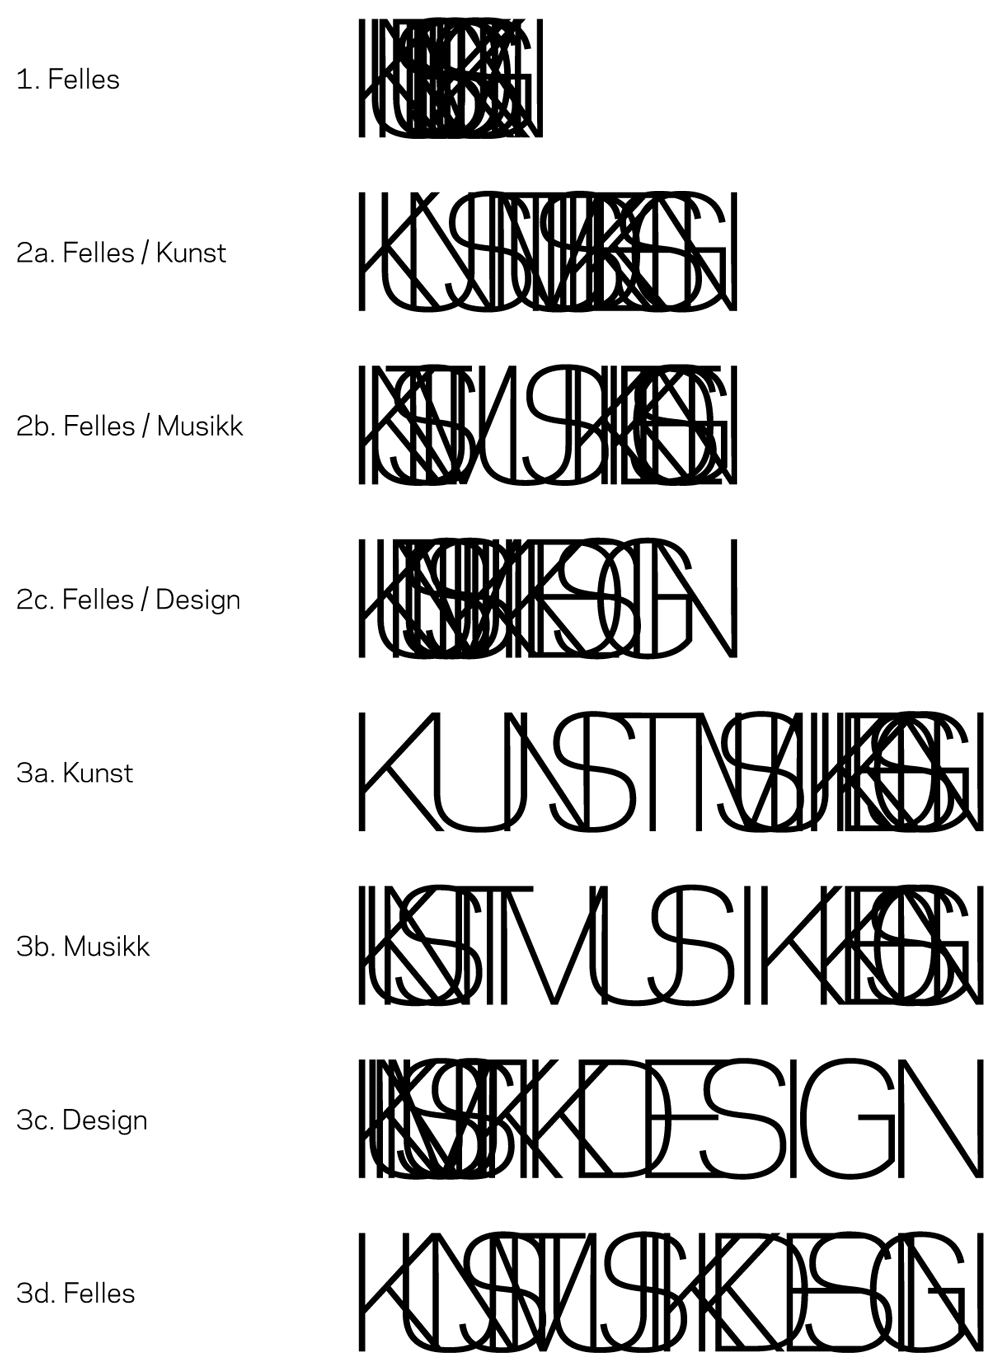 Logo expansions, revealing Kunst, Musikk, and Design.